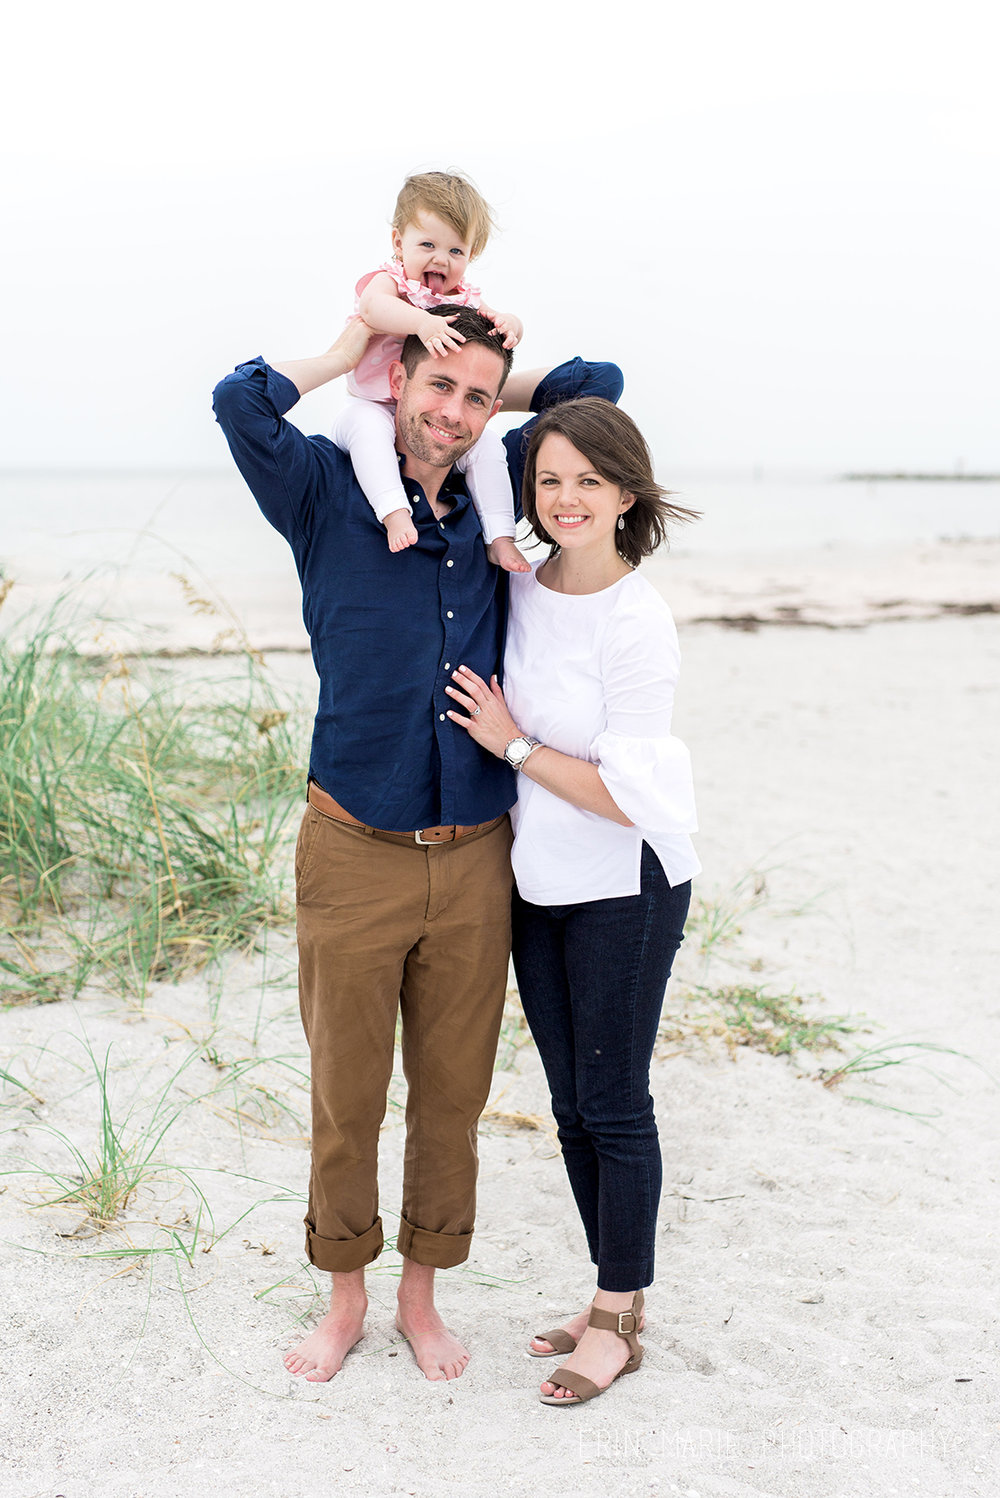 Sandkey_Beach_Family_Photographer_17.jpg